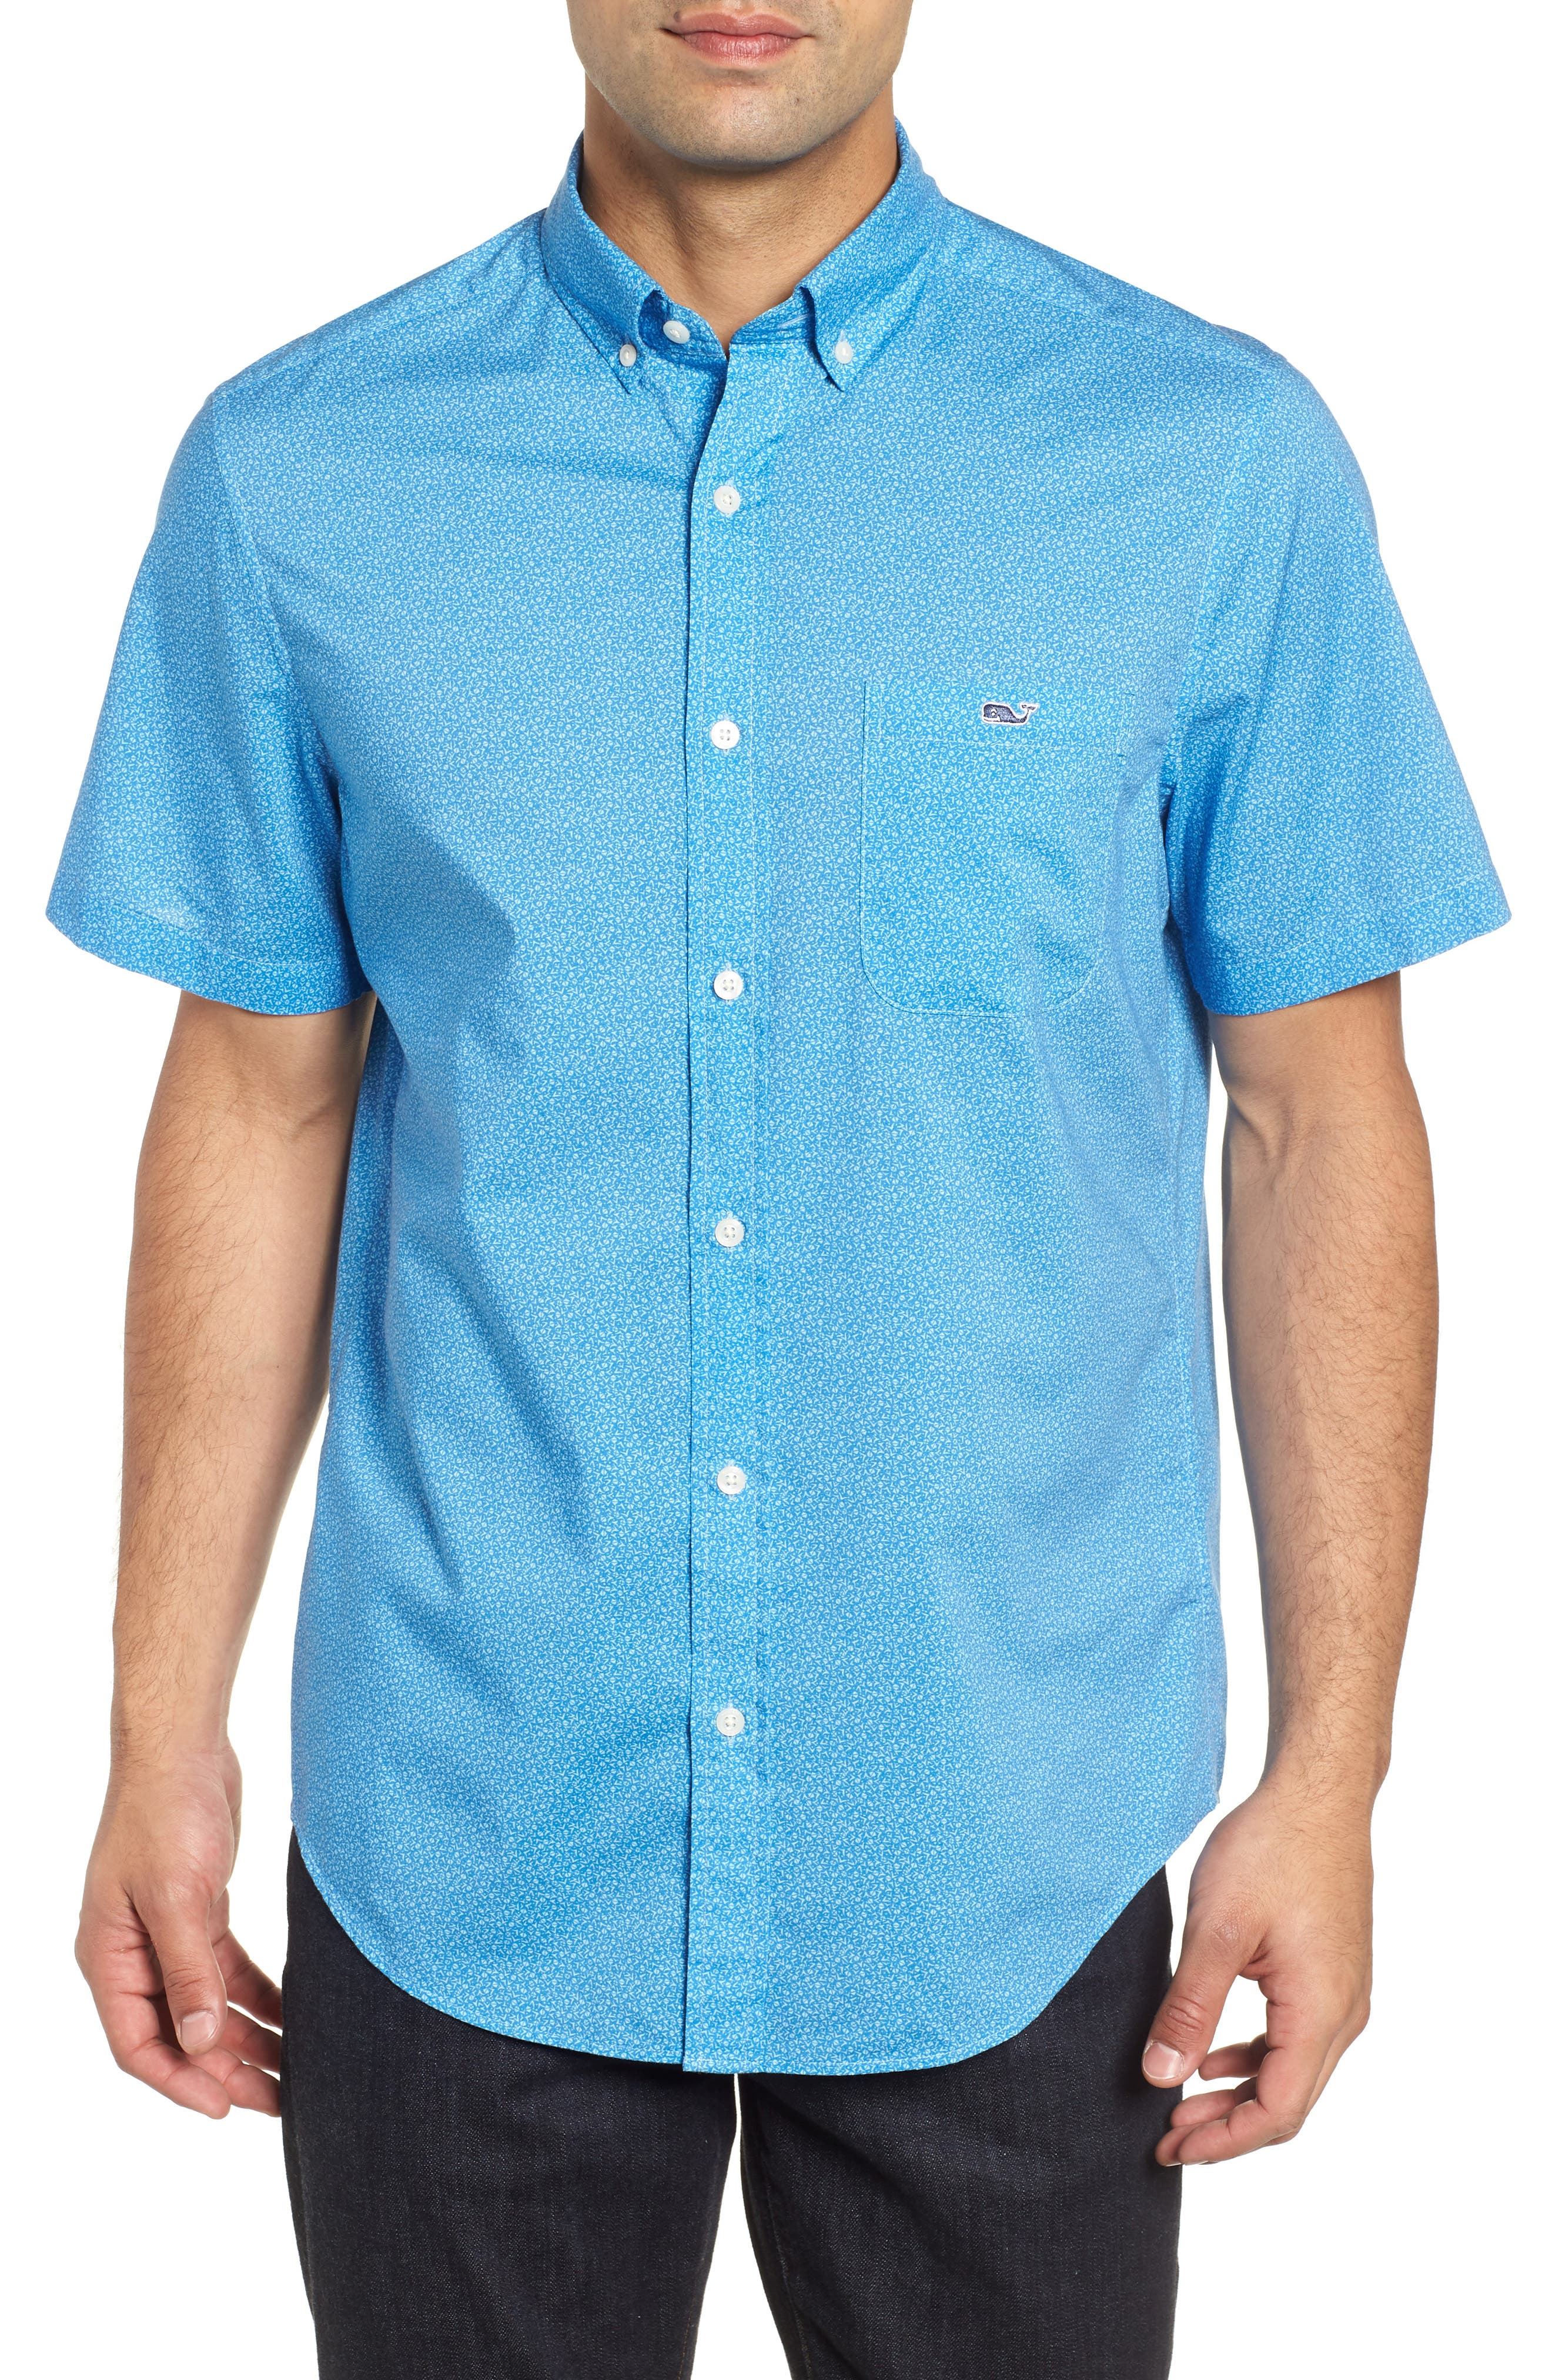 Seagulls Tucker Slim Fit Sport Shirt,                             Main thumbnail 1, color,                             400